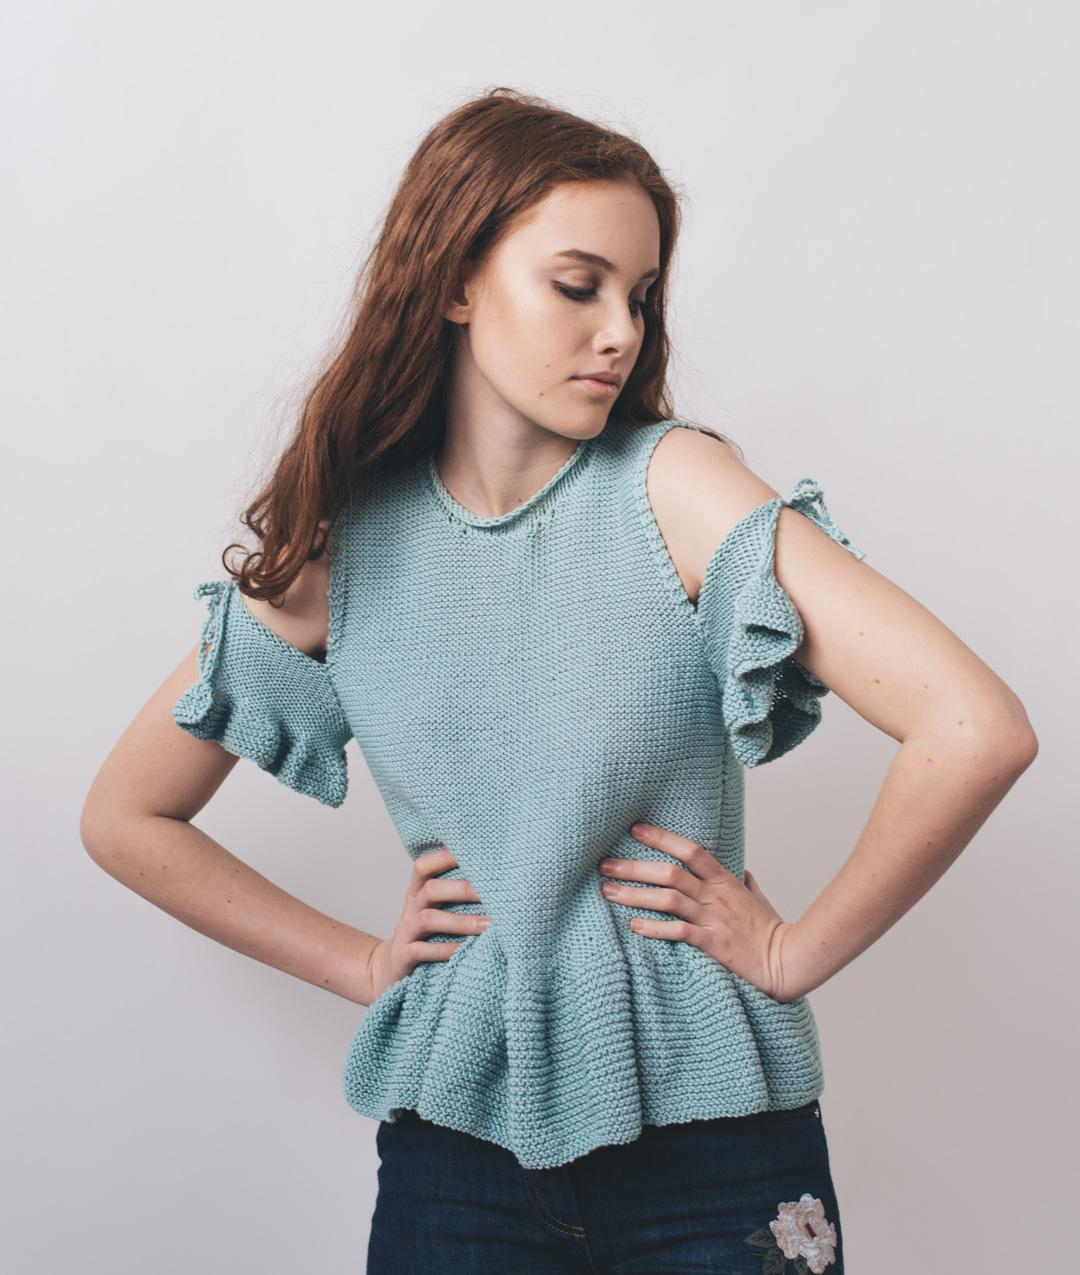 Sweaters and Tops - Cotton - AMALFI TOP - 1